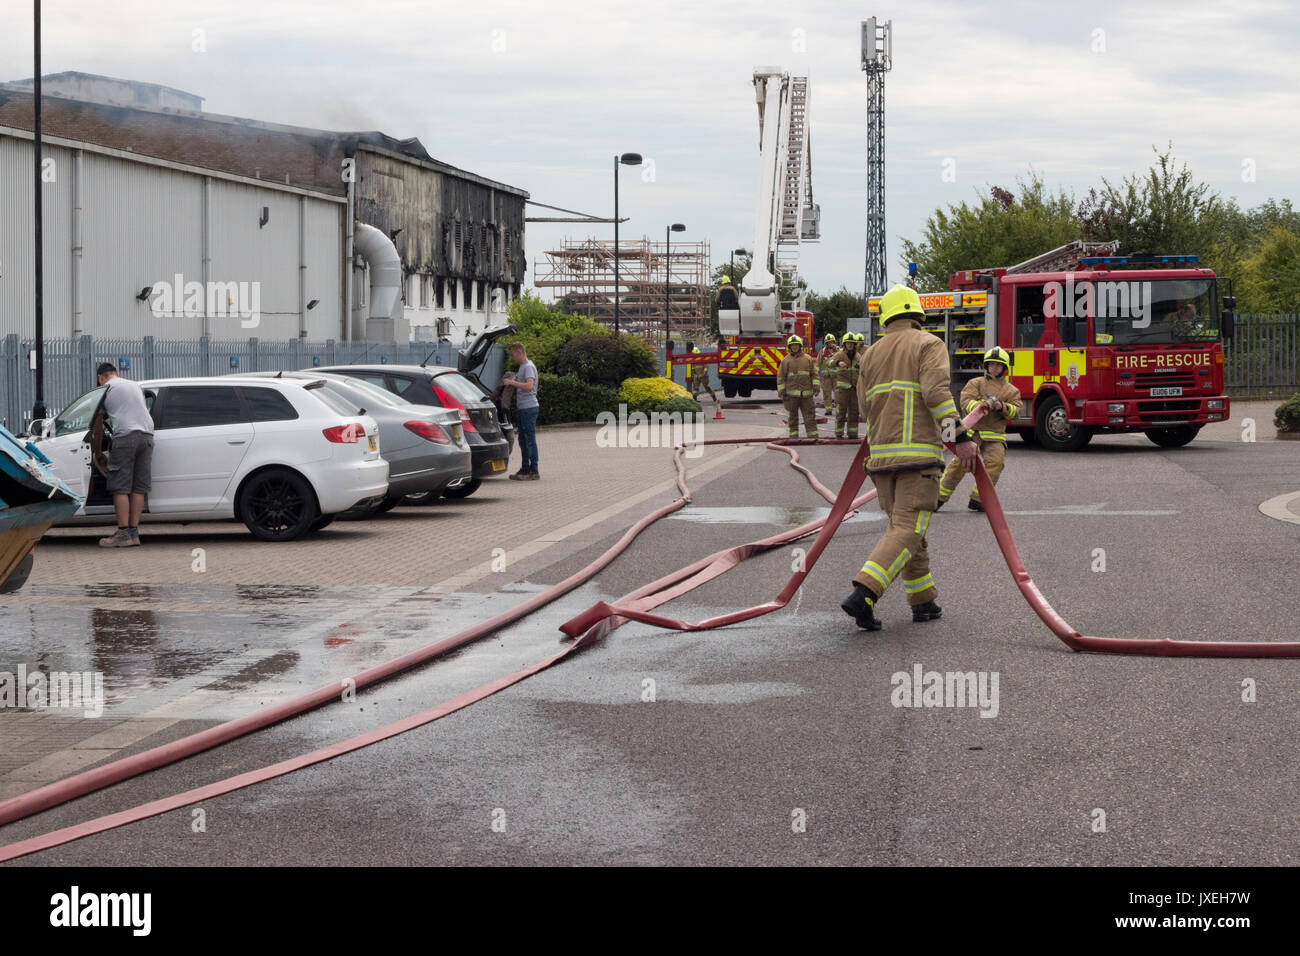 Southend on sea, Essex, UK. 16th August 2017. Airport Fire. A large fire has broken out at the Air Livery hangar Stock Photo